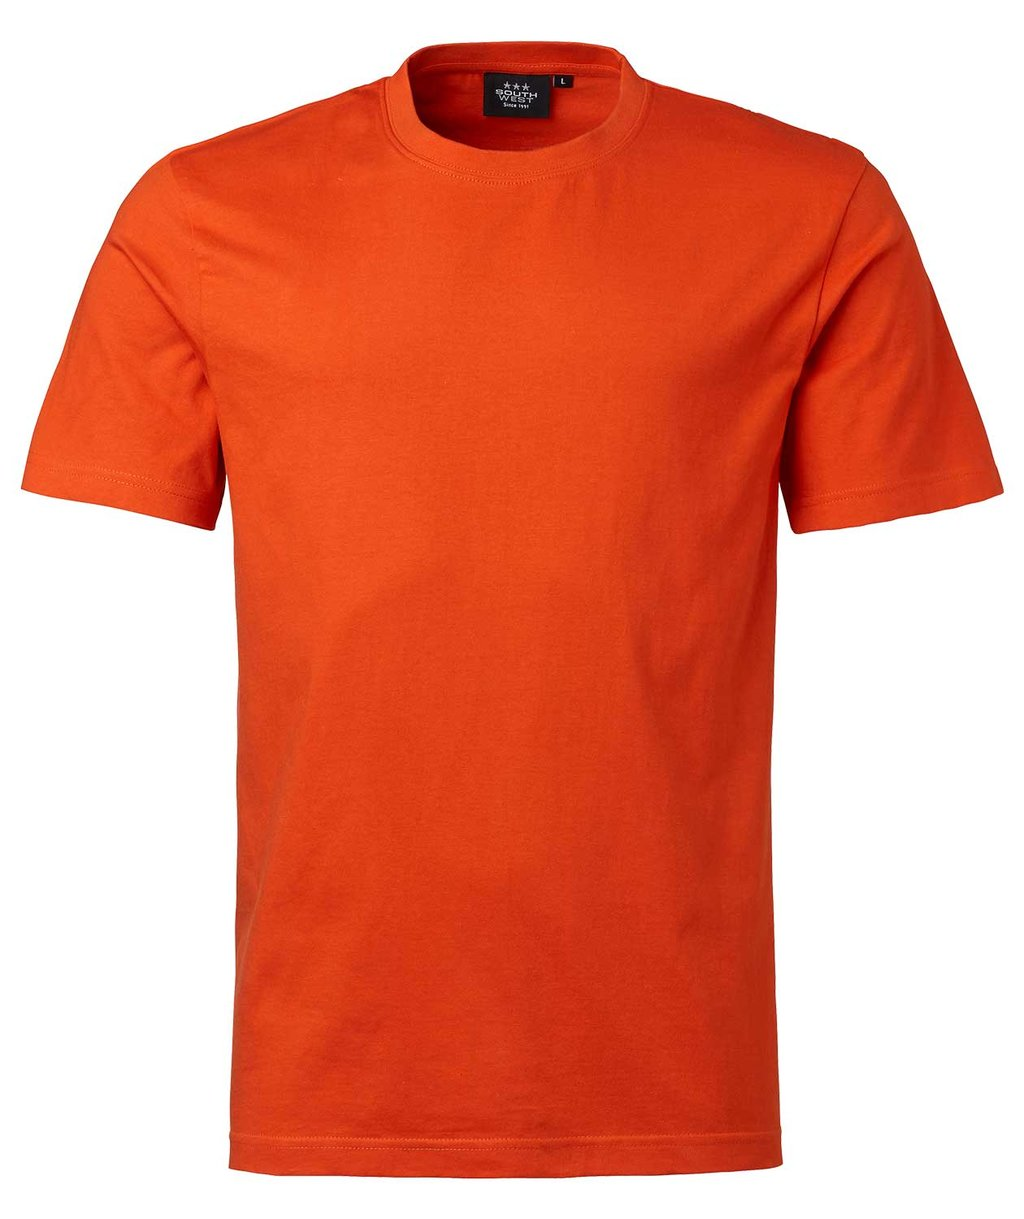 South West Kings ekologisk T-shirt till barn, Spicy Orange